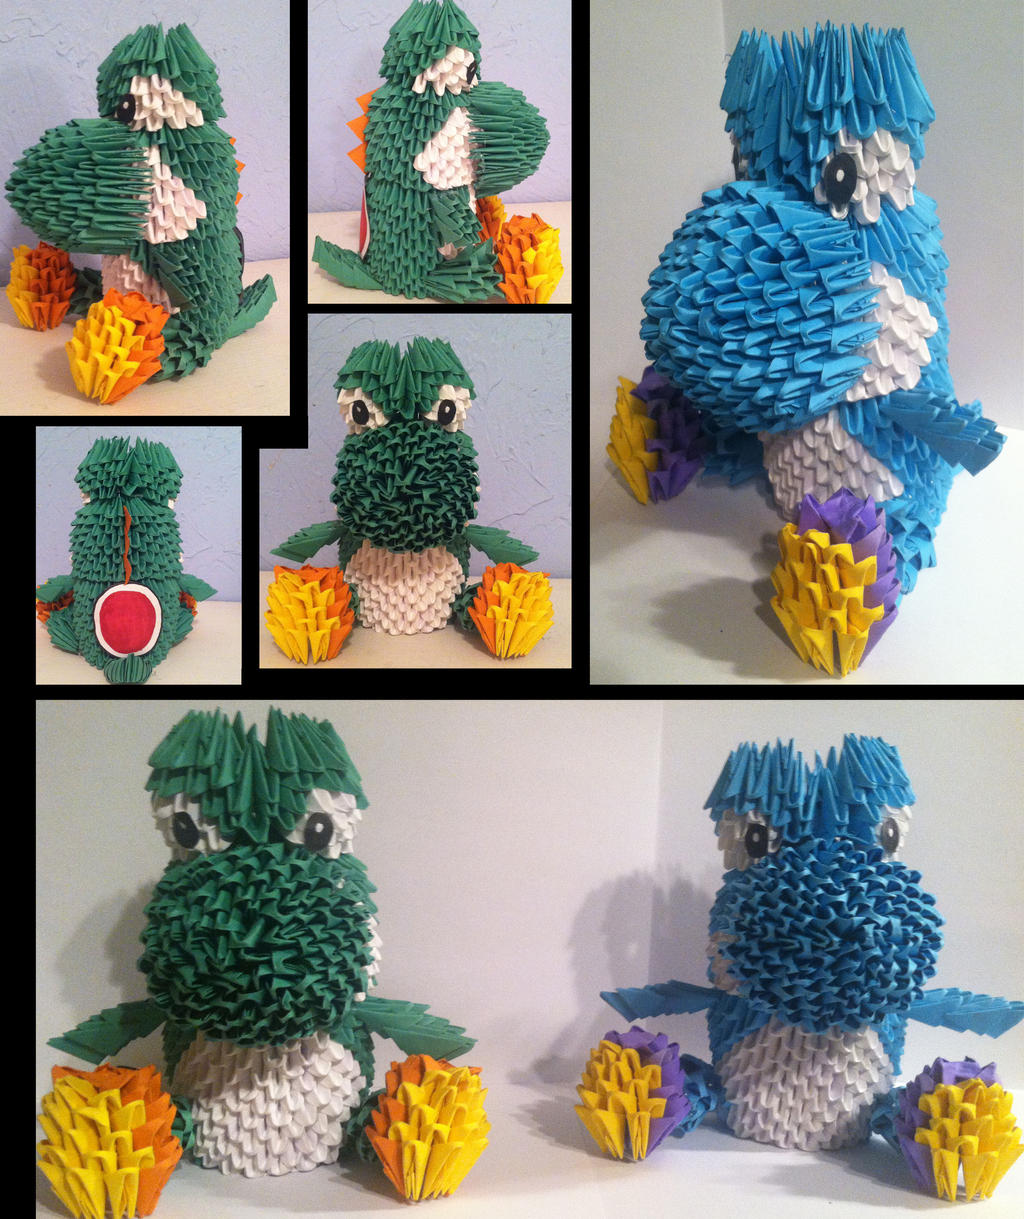 3D Origami Yoshi By Camelliawolf